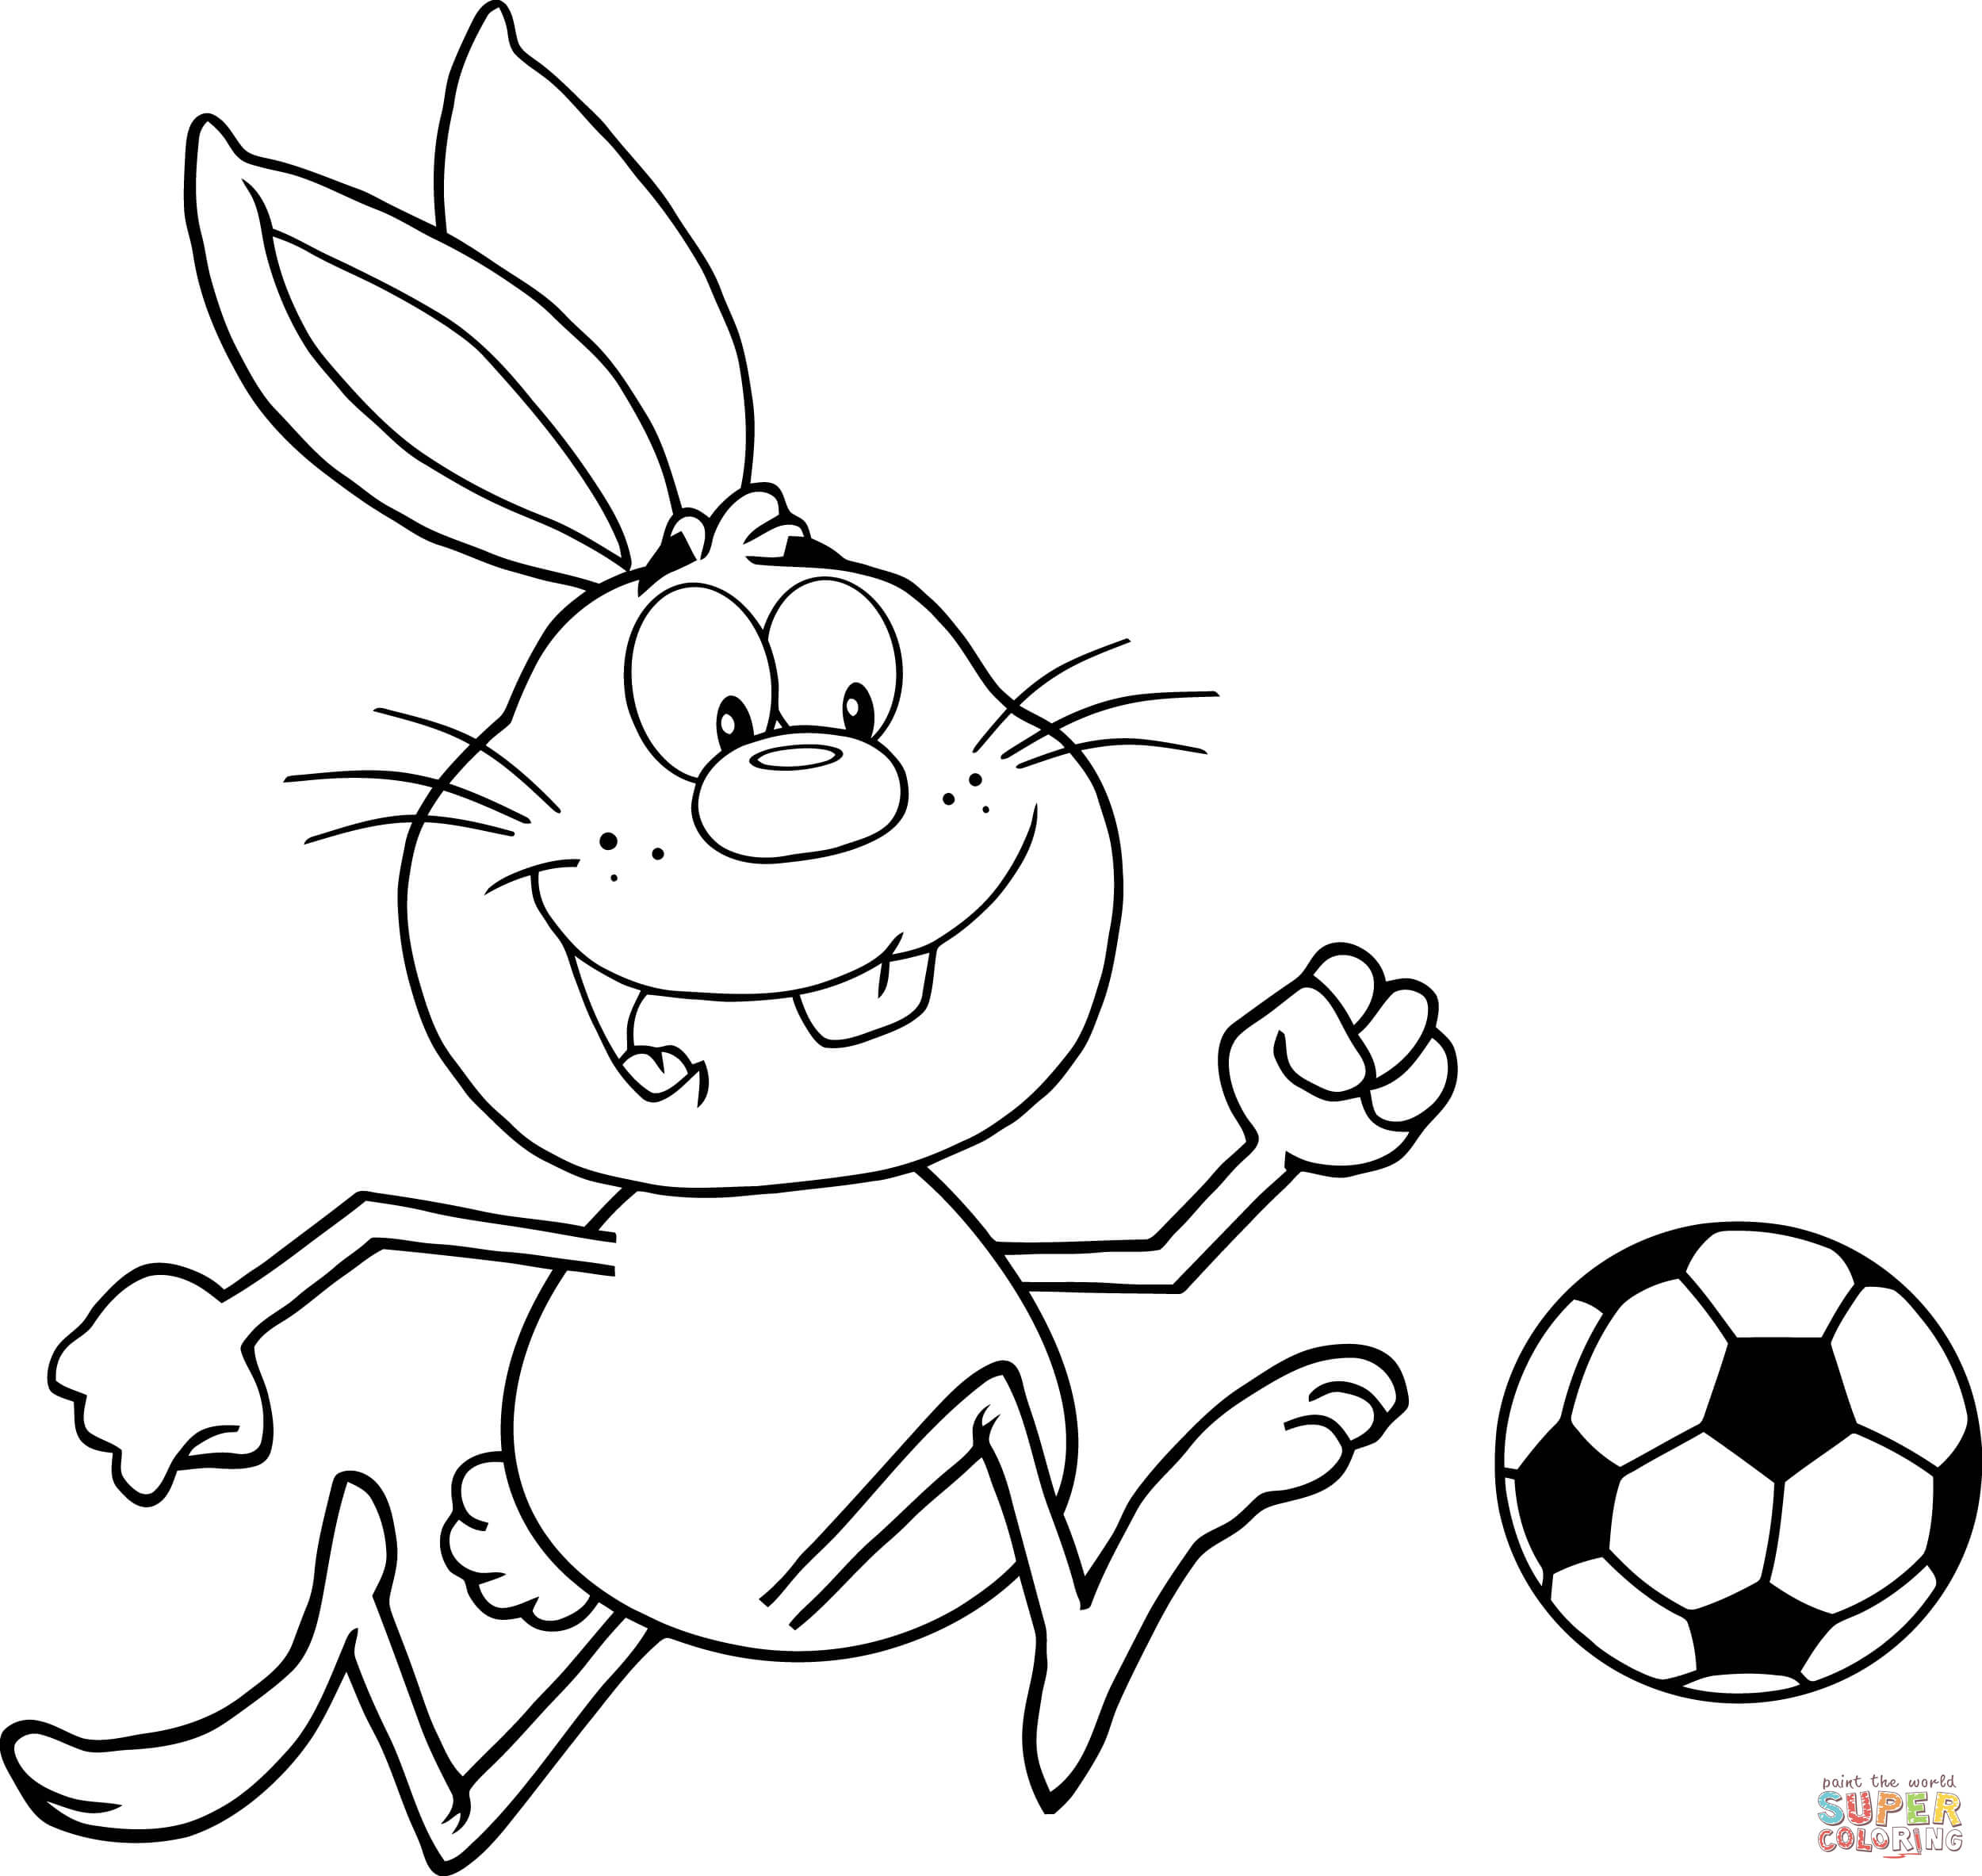 Soccer coloring pages | Free Coloring Pages